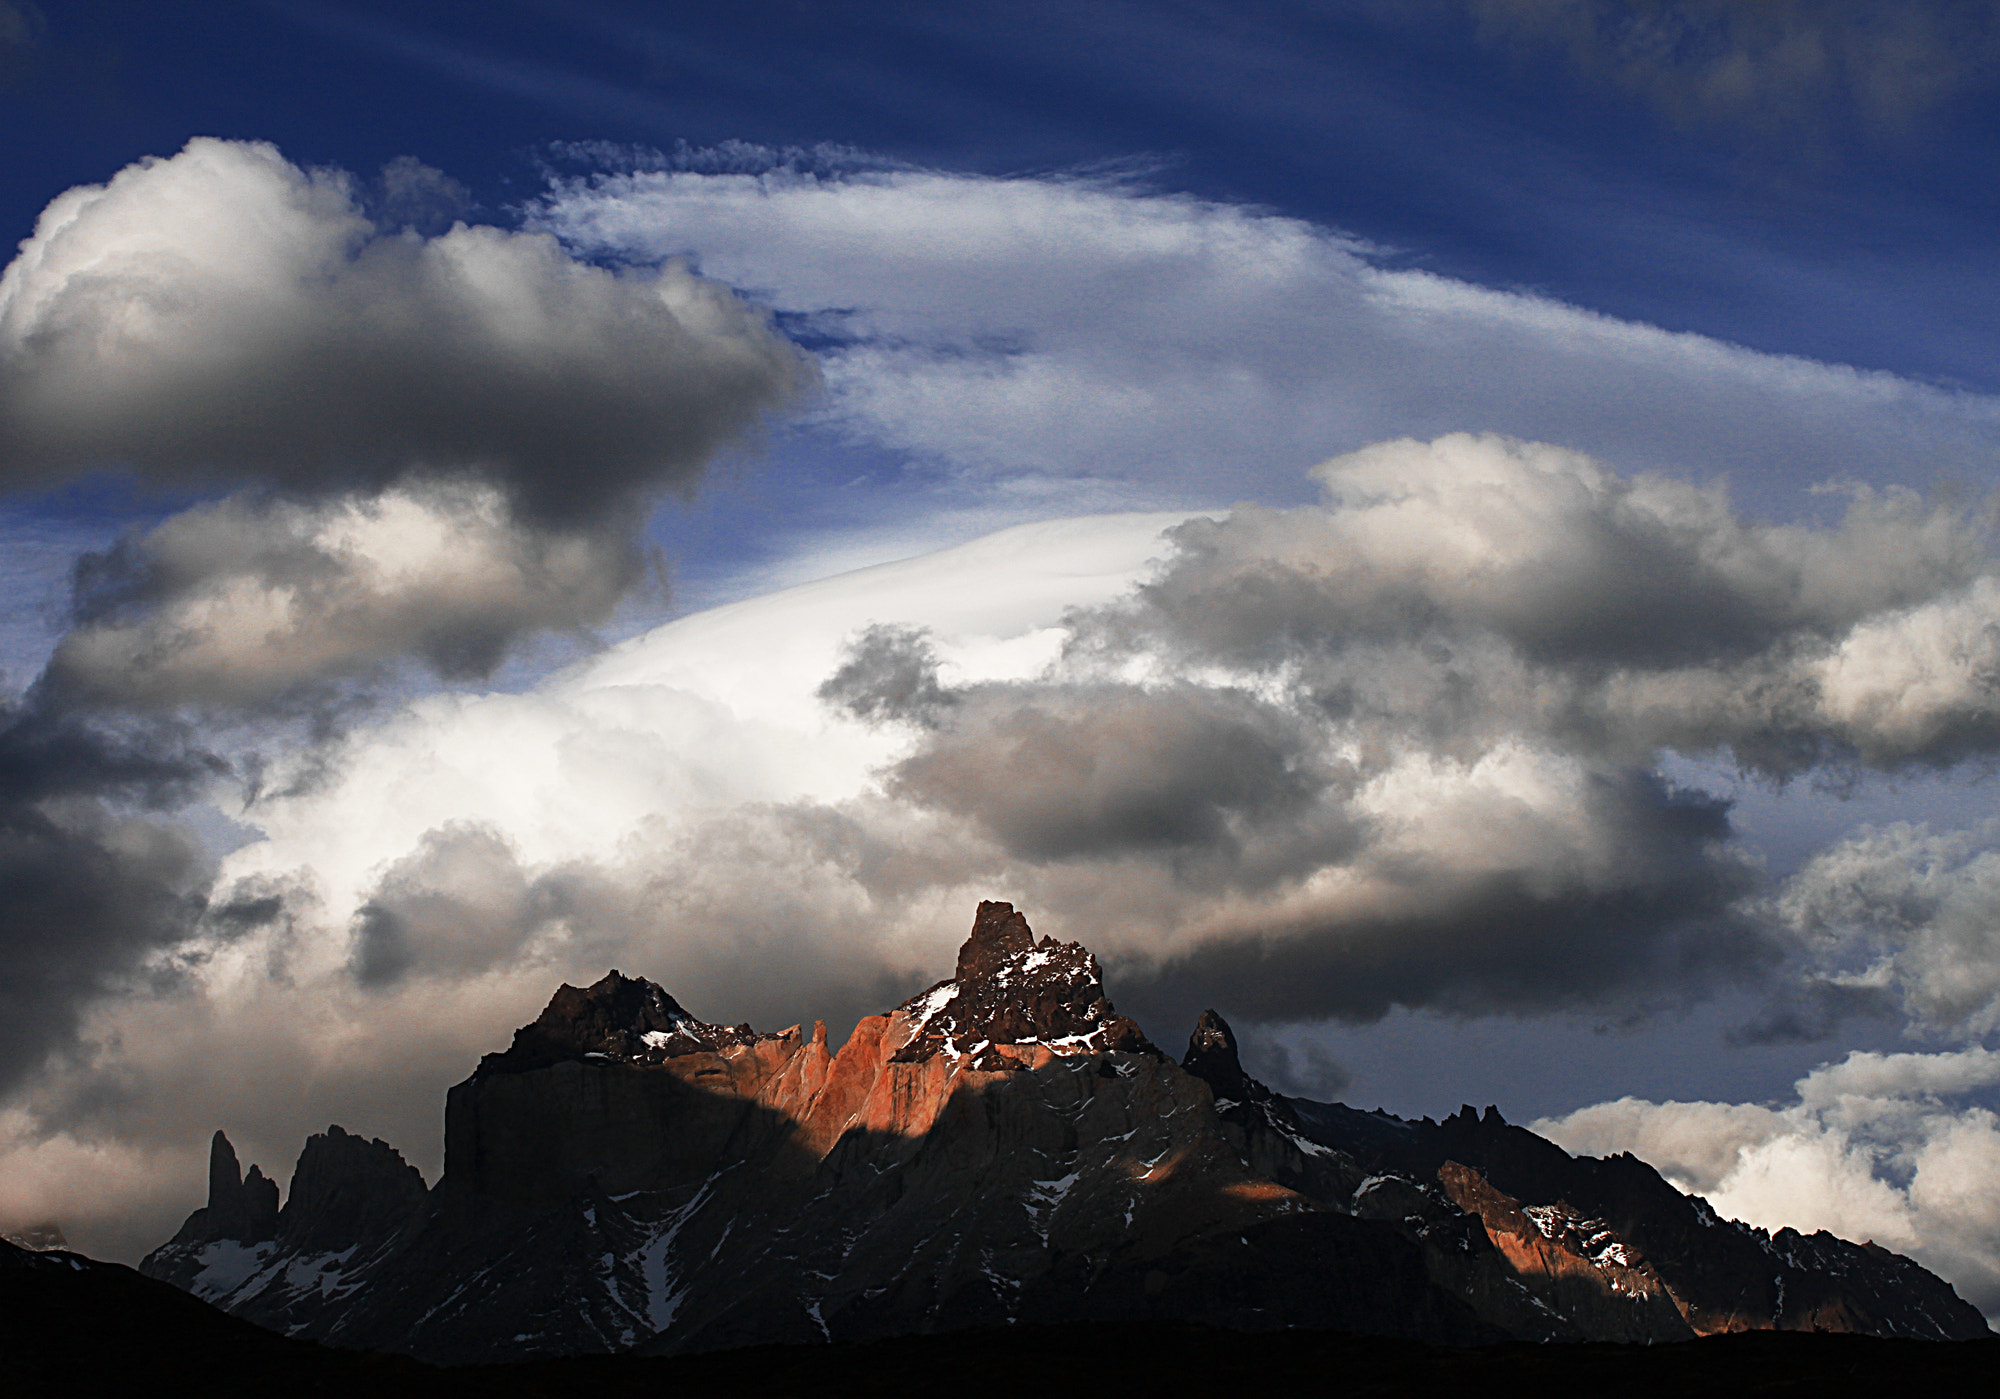 Photograph Cuernos del Paine by Tim T on 500px